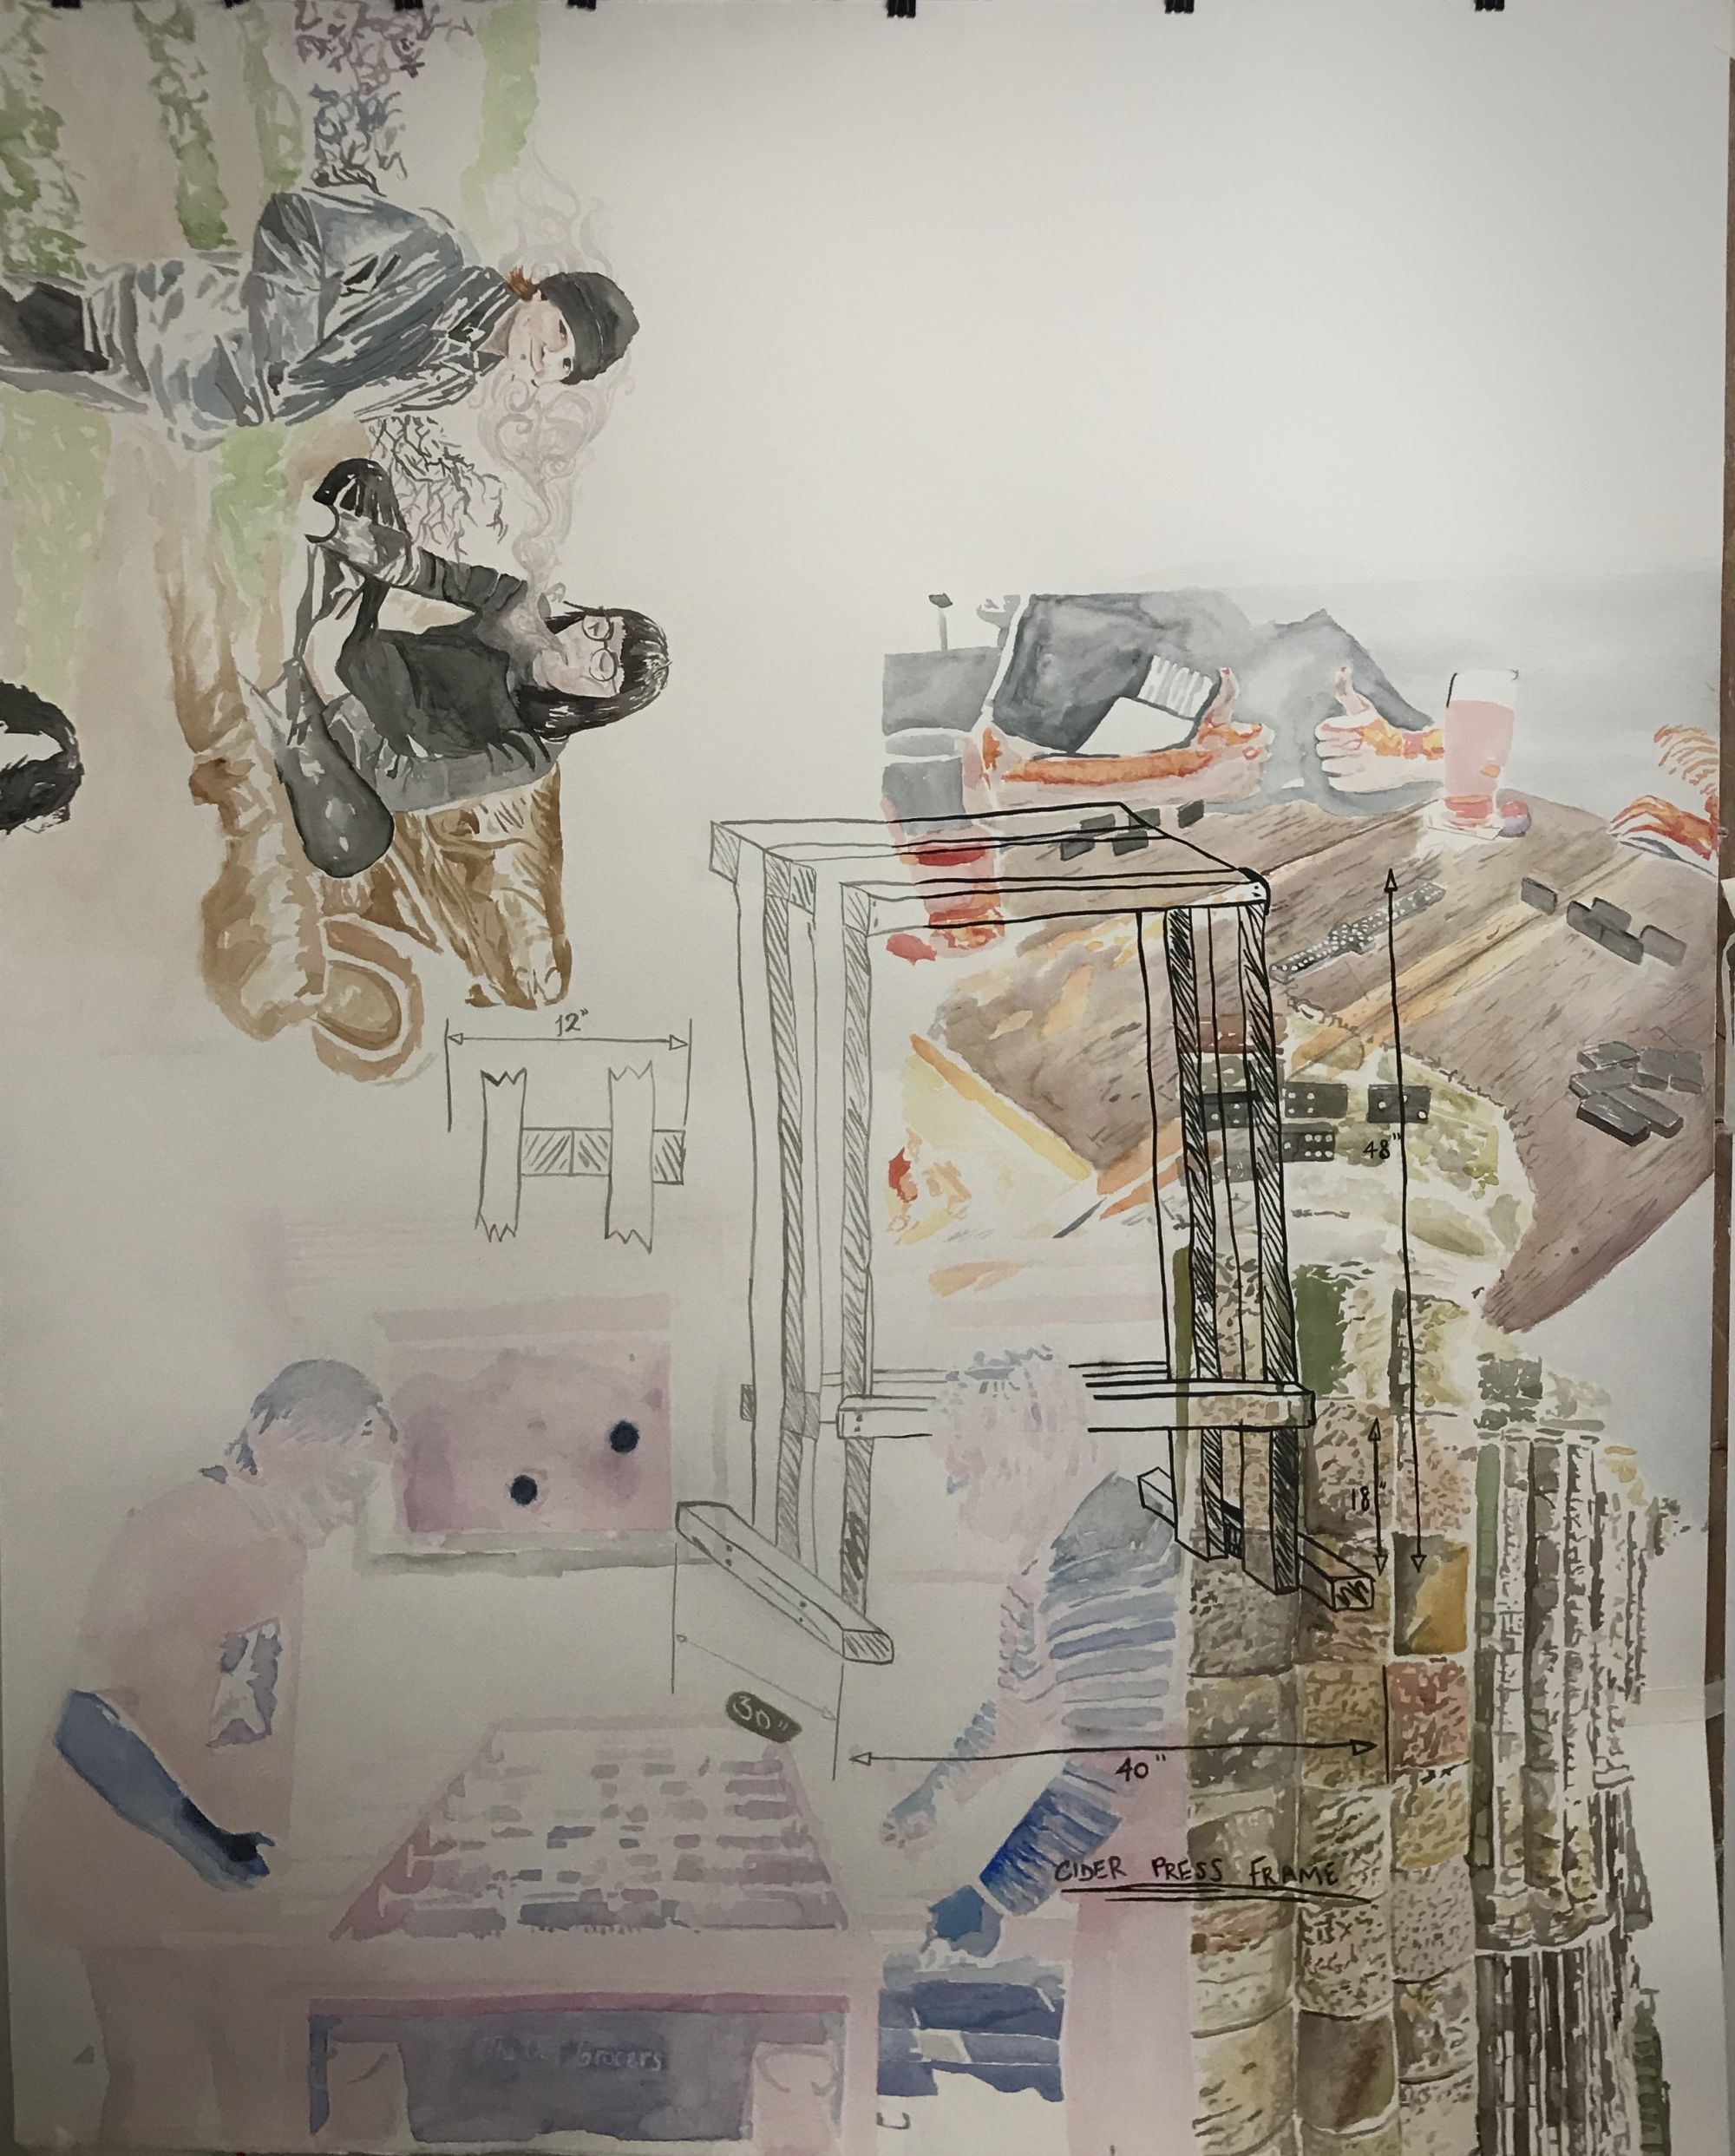 'The Old Grocers', watercolour and ink on paper, [152.4 x 121.92 cm] (2020).